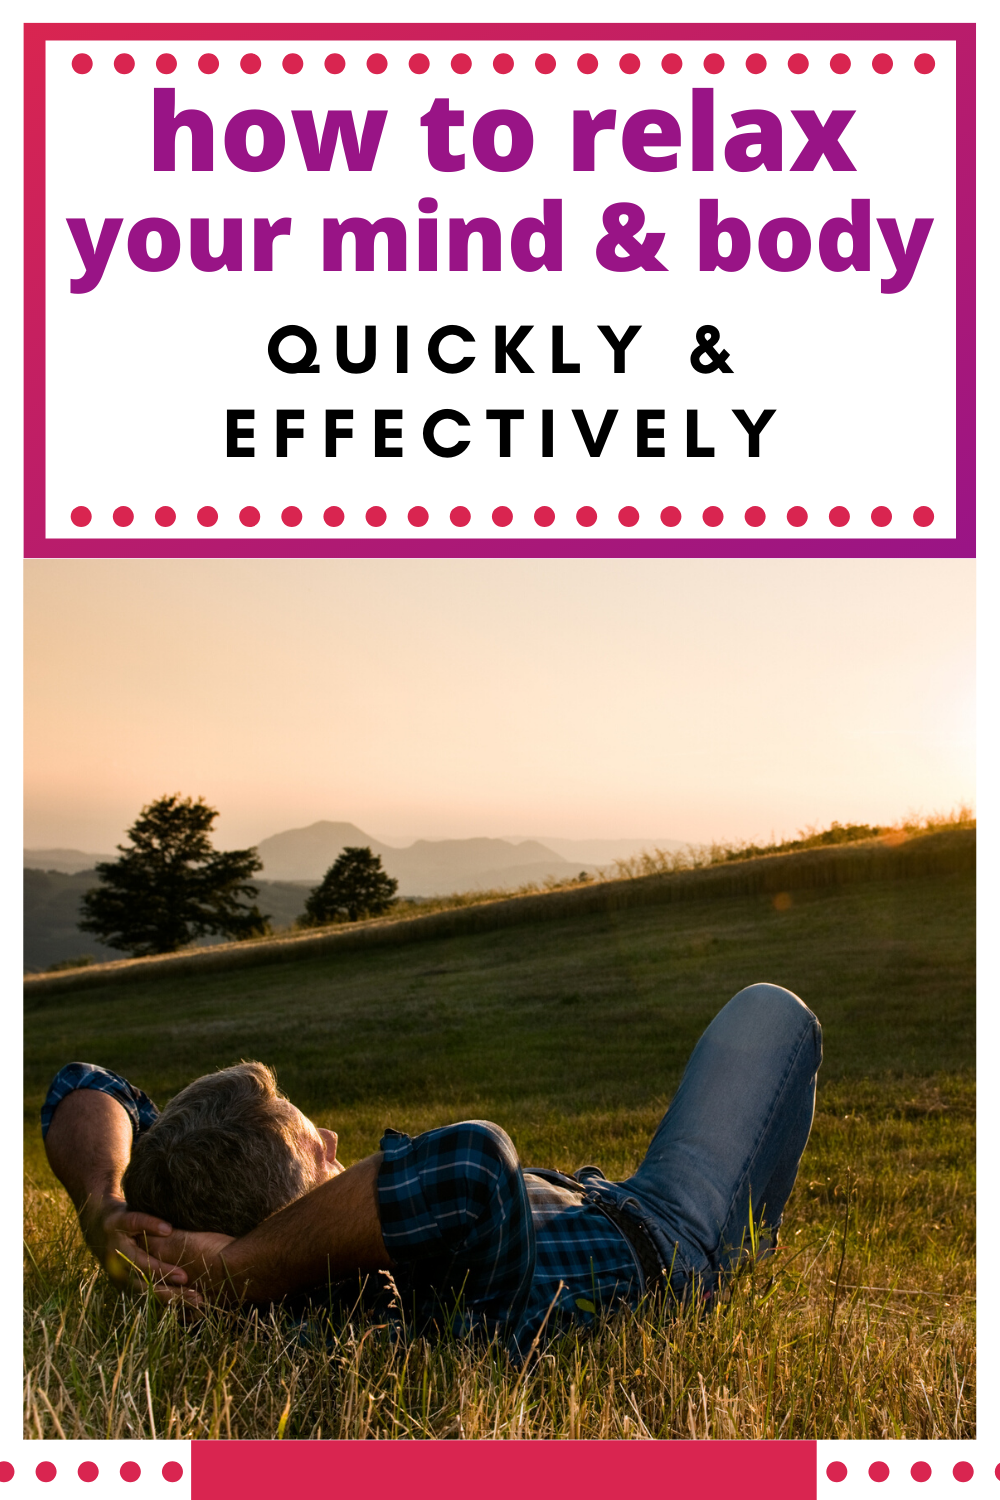 relax your mind and body quickly